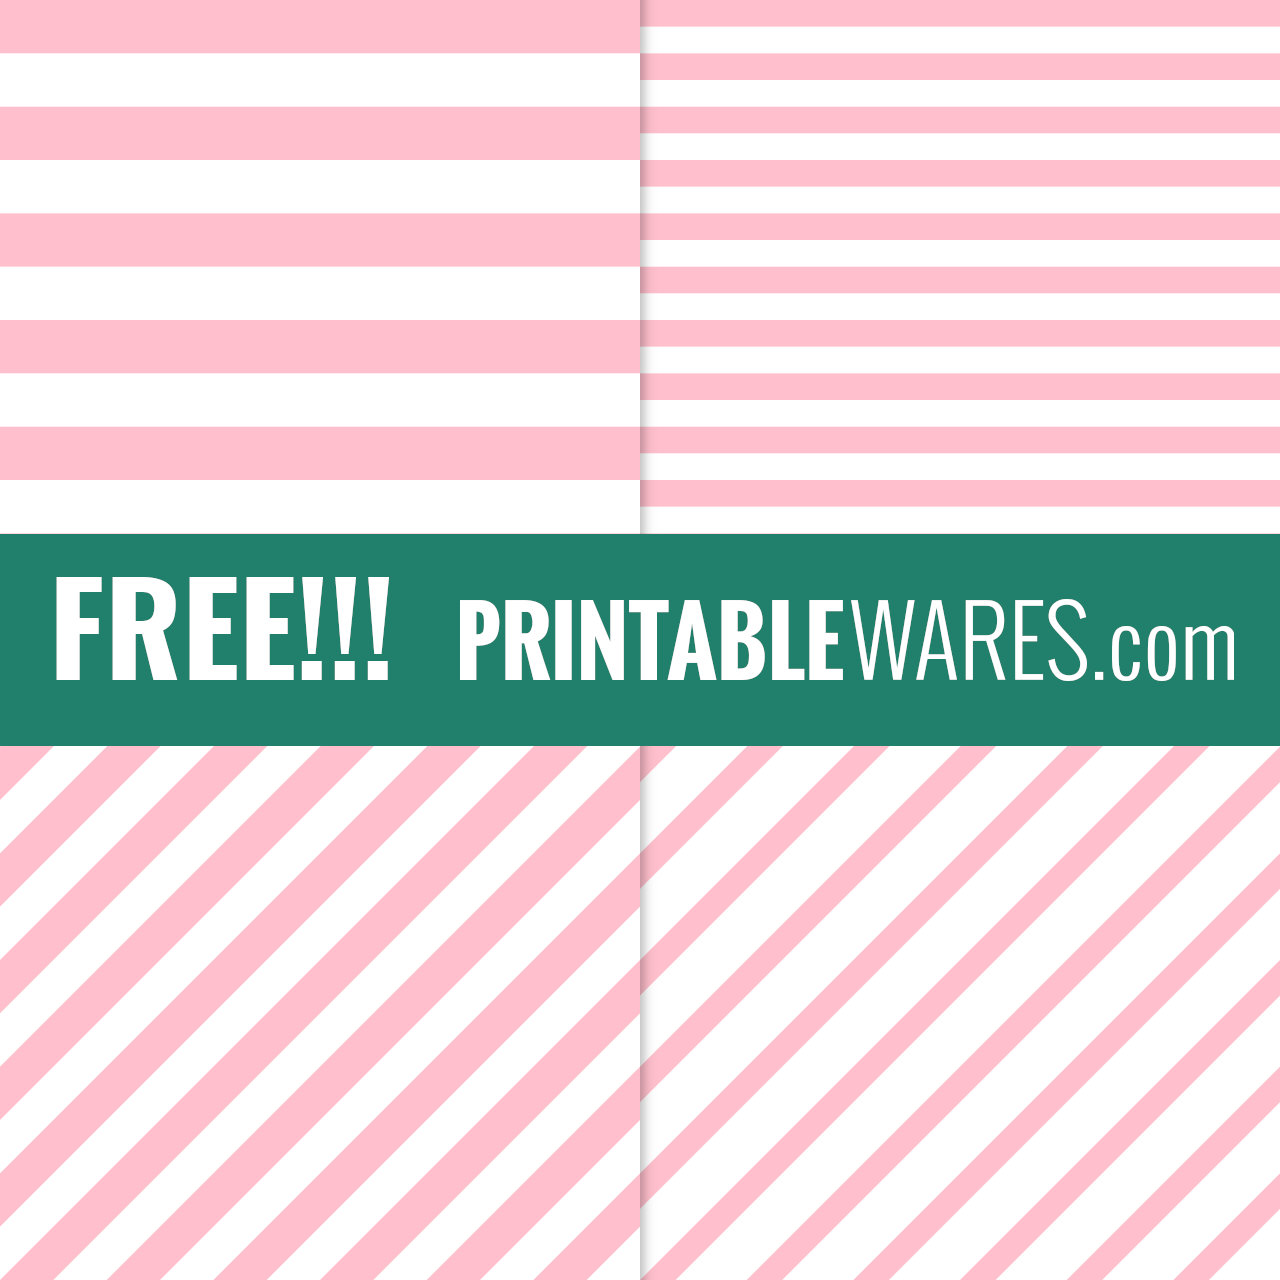 Blush Pink Striped Scrapbook Papers